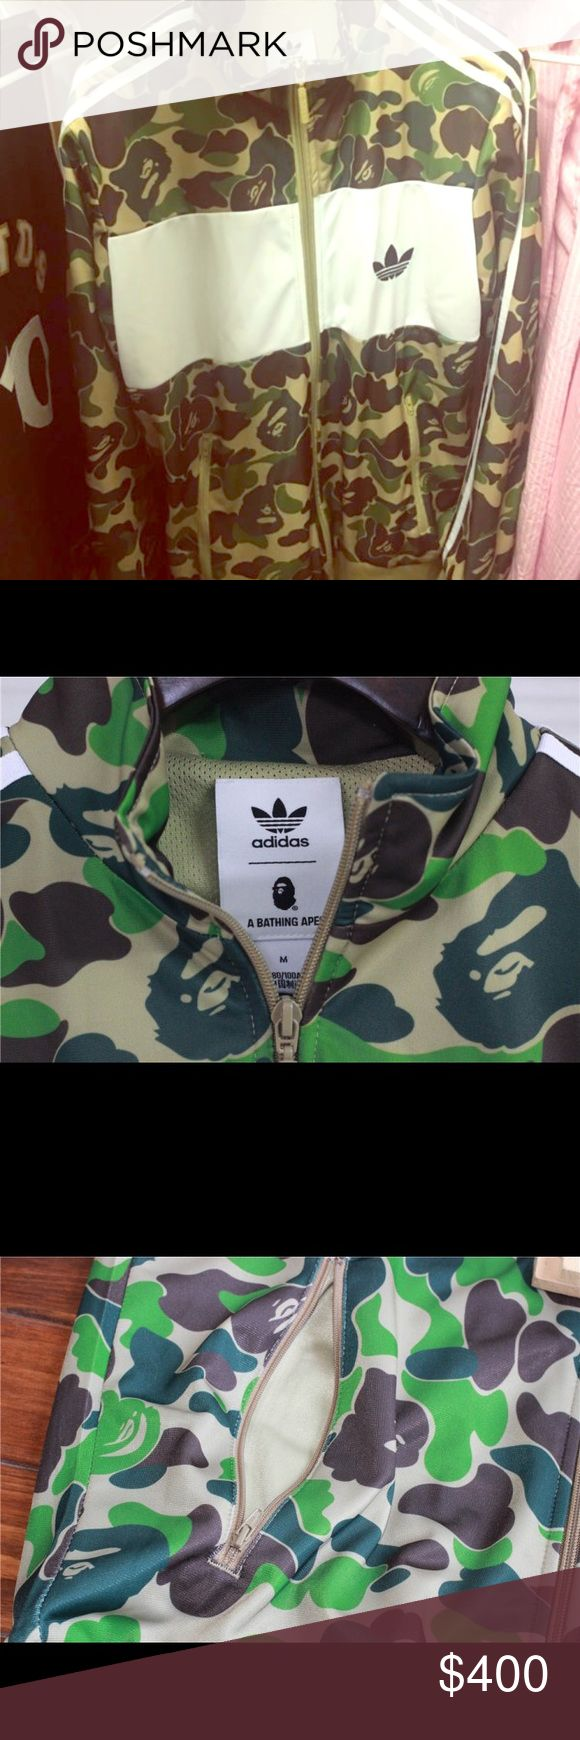 Selling this Adidas x Bape A Bathing Ape Firebird Jacket on Poshmark! My username is: rebeccalmorris. #shopmycloset #poshmark #fashion #shopping #style #forsale #Adidas #Jackets & Blazers OPEN TO OFFERS !!!!